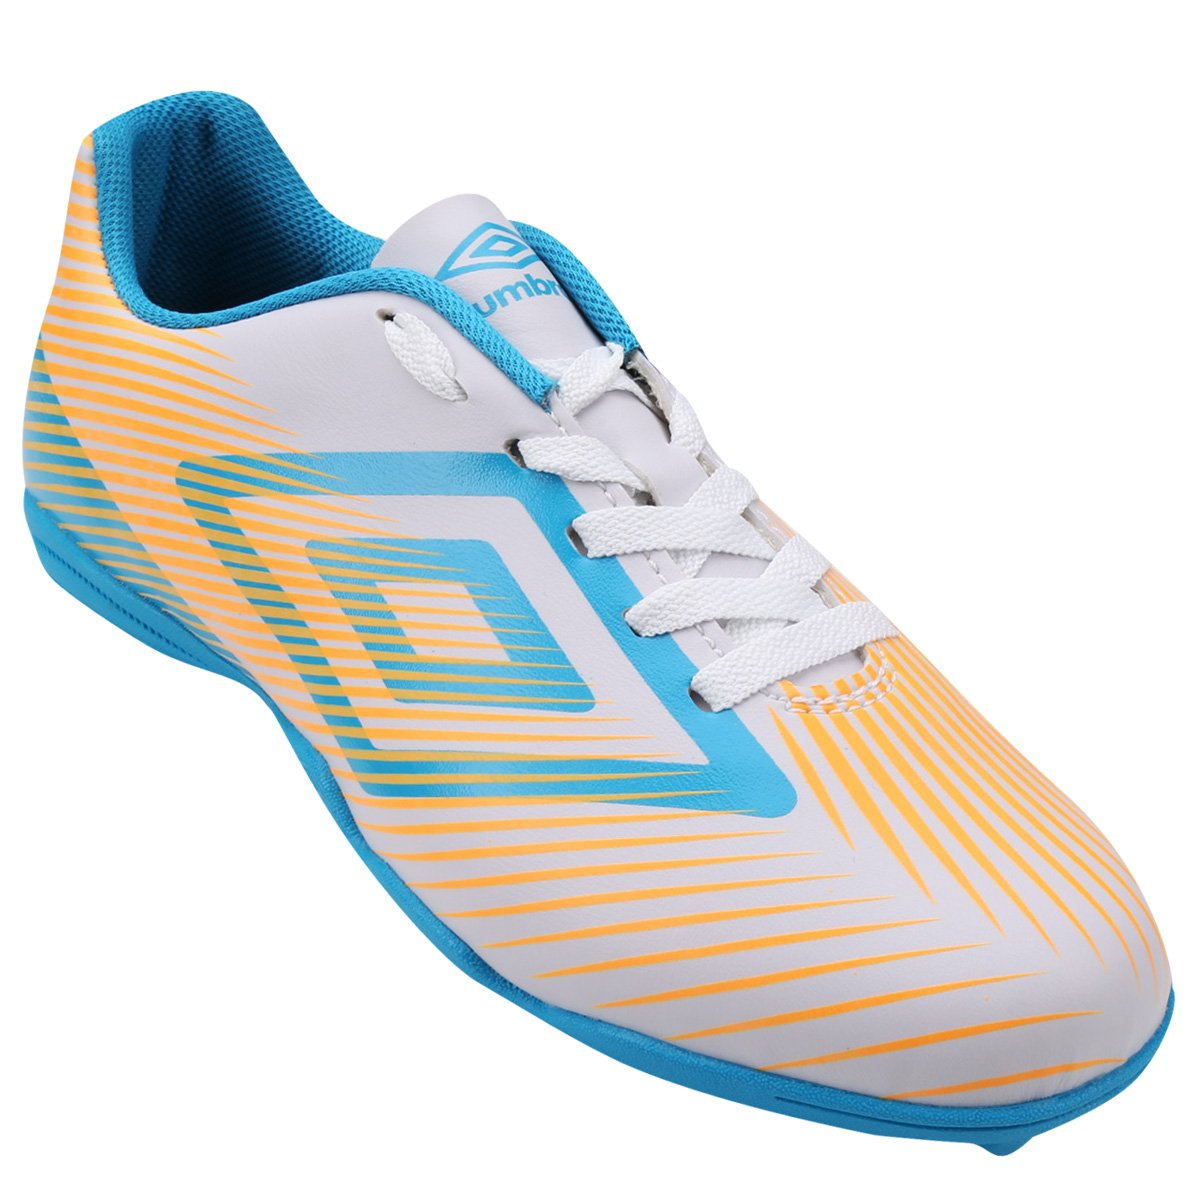 c9034c0b811a8 Chuteira Society Umbro Speed 2 | Shop Vasco